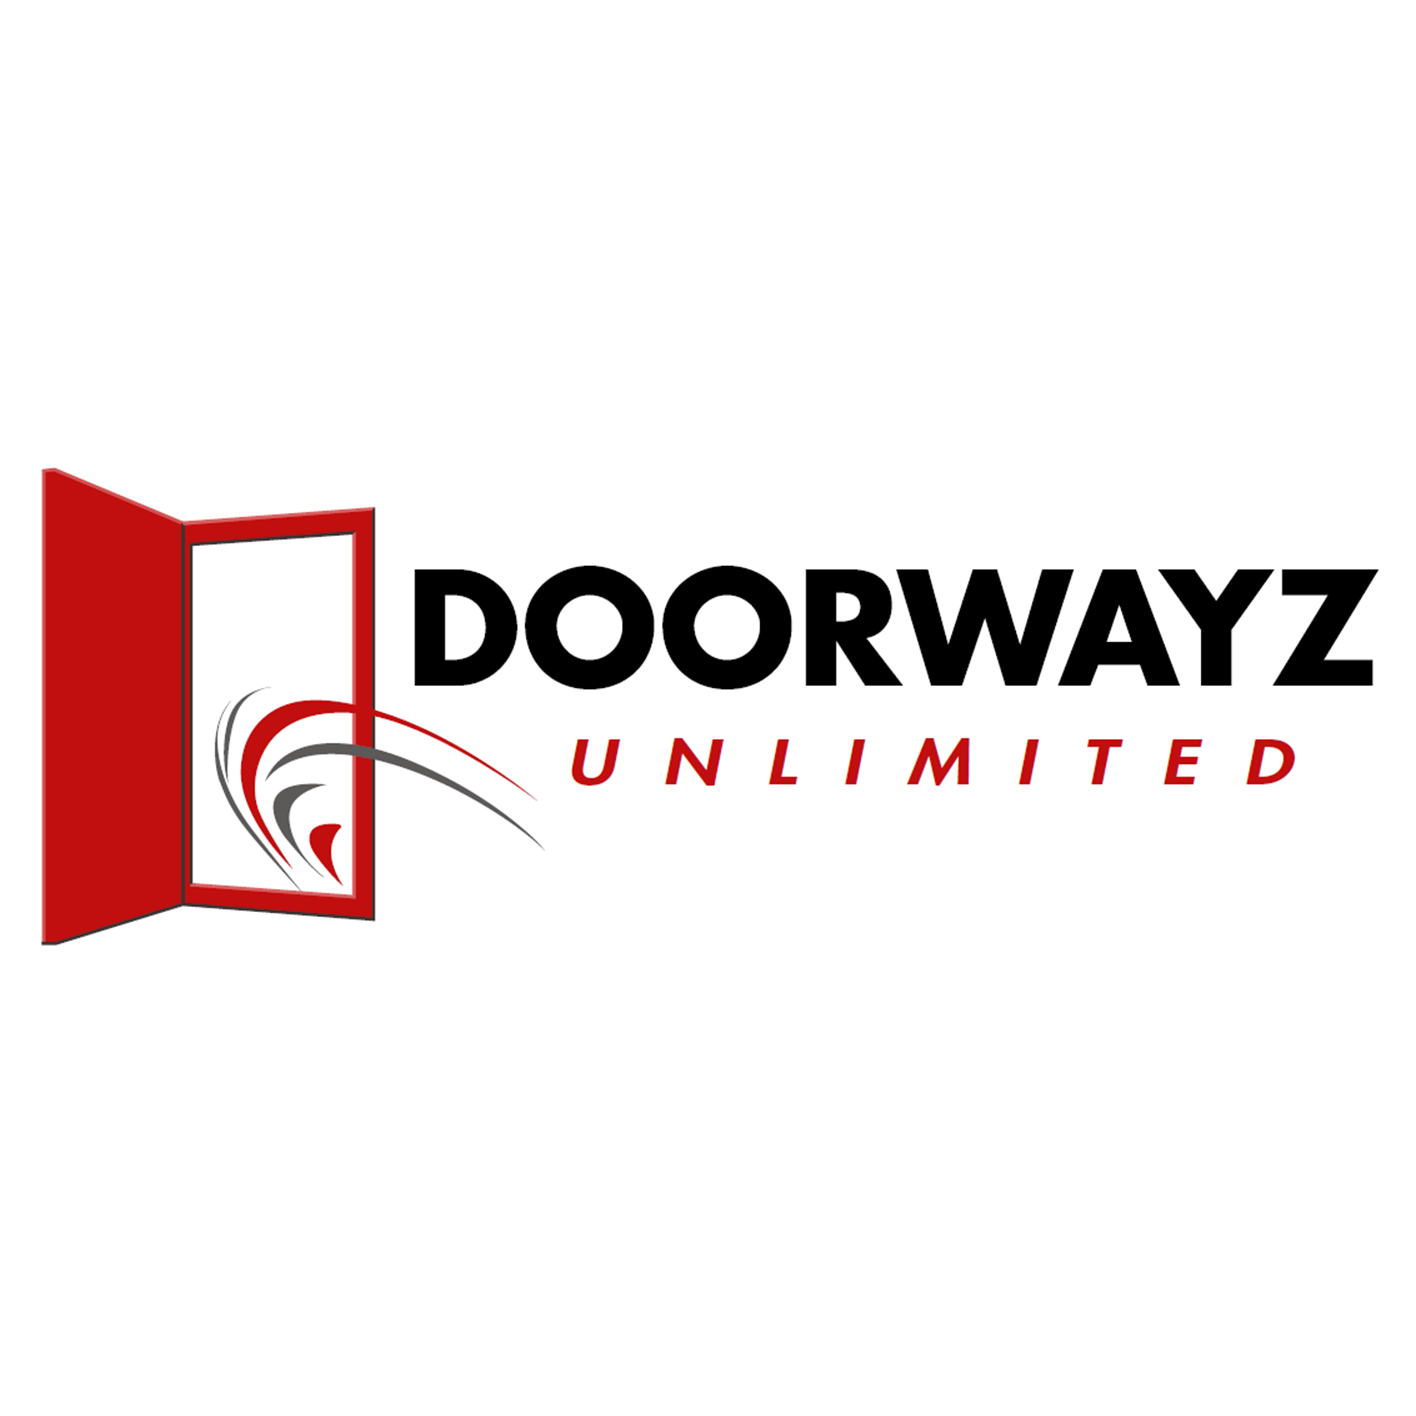 Doorwayz Unlimited - Schaumburg, IL 60193 - (630)594-1220 | ShowMeLocal.com